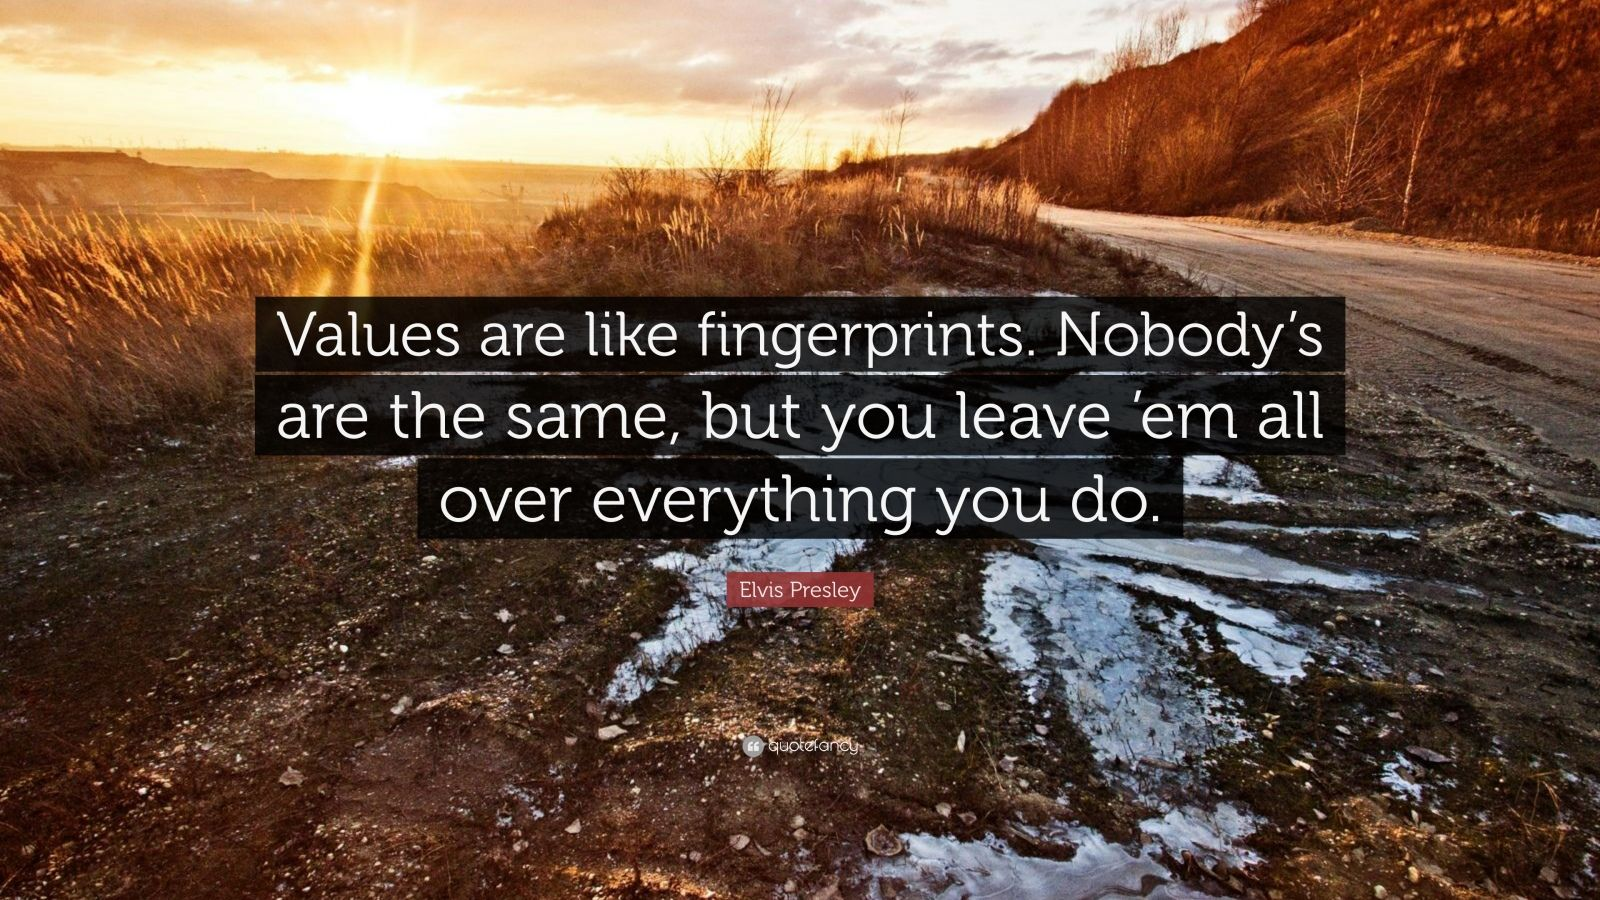 """Elvis Presley Quote: """"Values are like fingerprints. Nobody's are the same, but you leave 'em all over everything you do."""""""